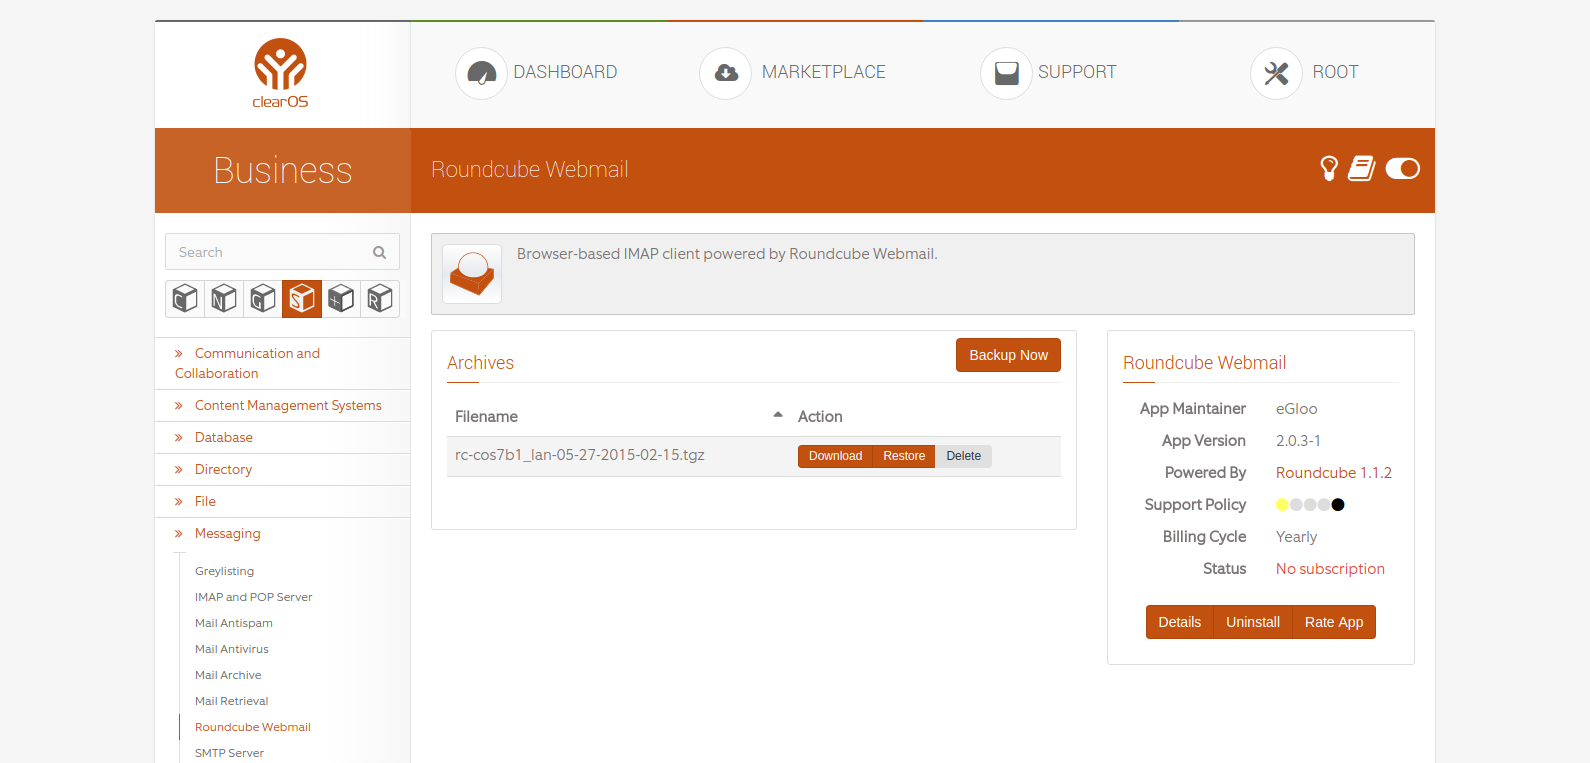 ClearOS App - Roundcube Webmail